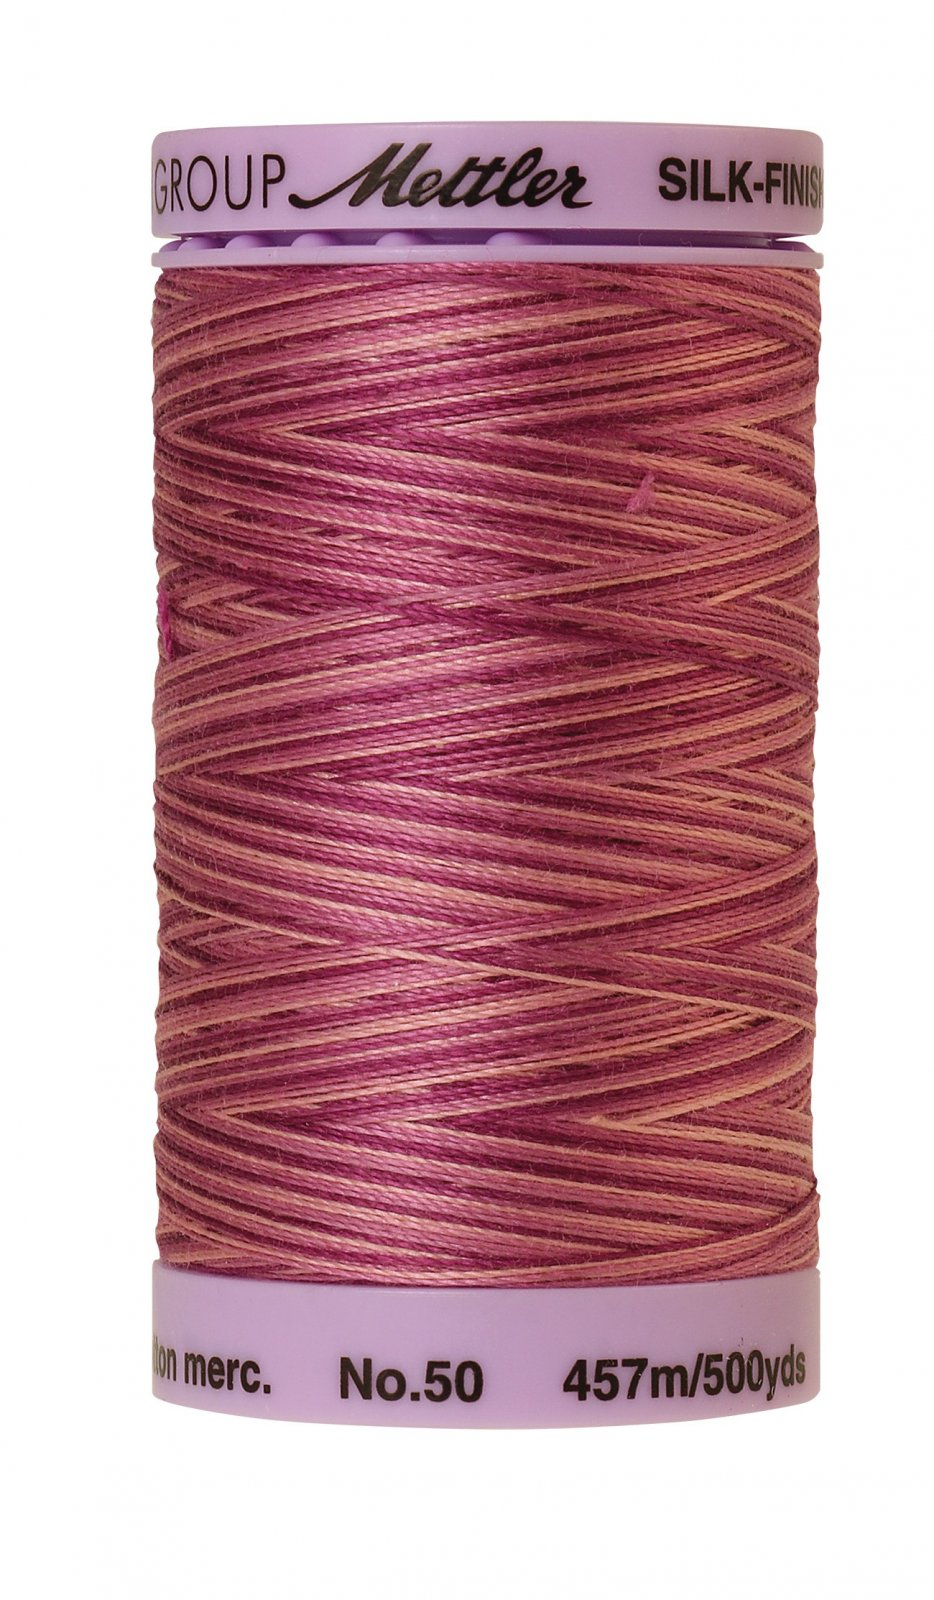 Silk-Finish 50wt Variegated Cotton Thread 457M/500yd Pink Flox